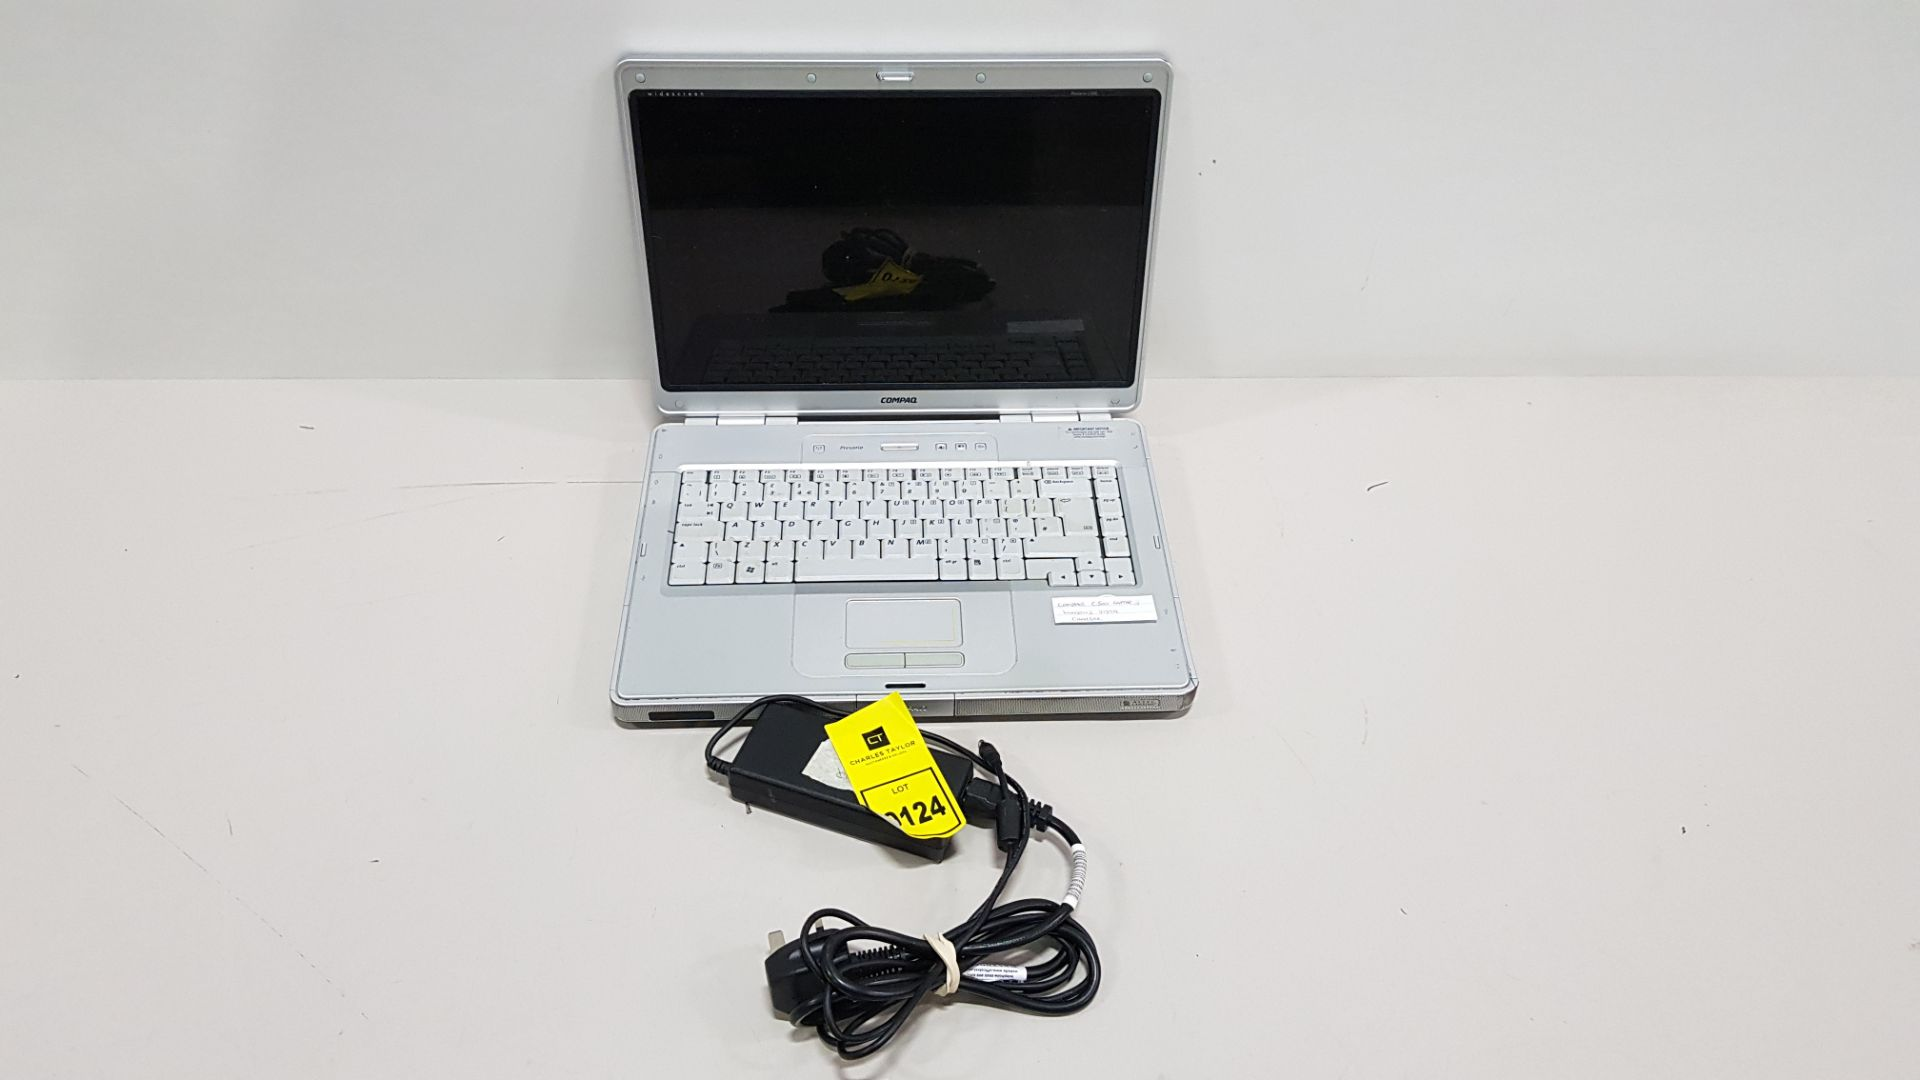 COMPAQ C500 LAPTOP WINDOWS VISTA - WITH CHARGER